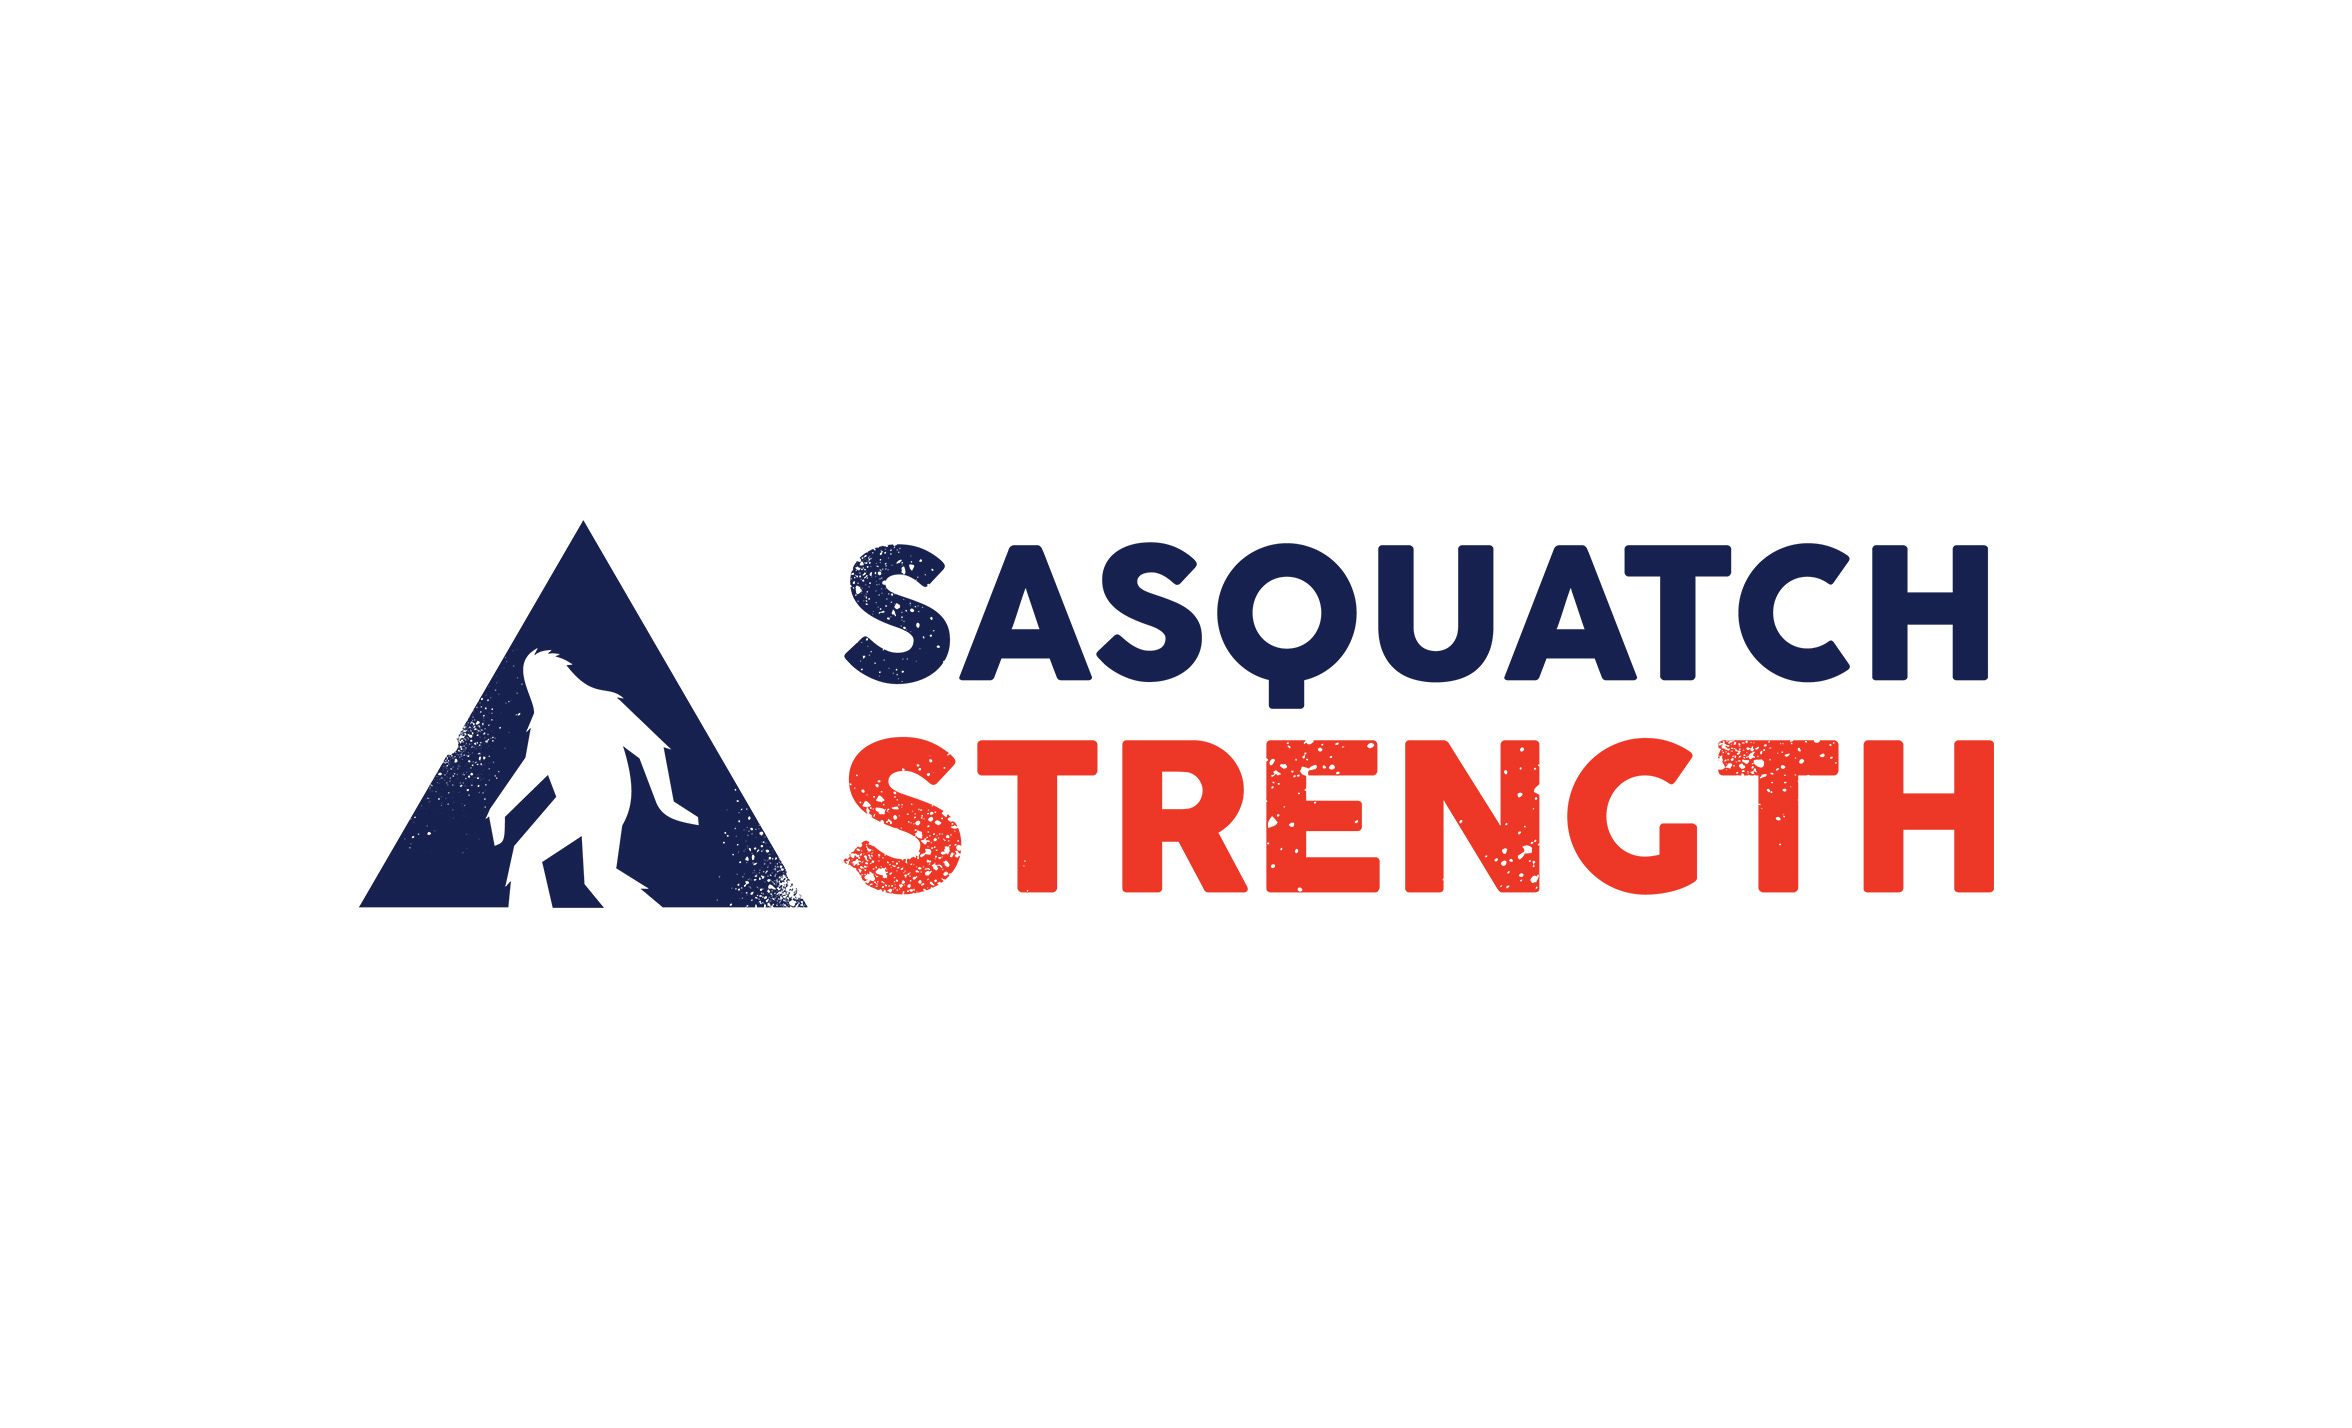 SASQUATCH STRENGTH - Sasquatch is a modality of high intensity training that focuses on education, safety and efficacy in order to achieve the best results possible for our members. But, to those that care to stick around, Sasquatch is so much more. Sasquatch is a journey from illness to wellness; from insecurity to confidence; from barely being able to stand up, to lifting your grandkids up when they want to be held. We create fitness for life. We want our members to live longer, and live better.